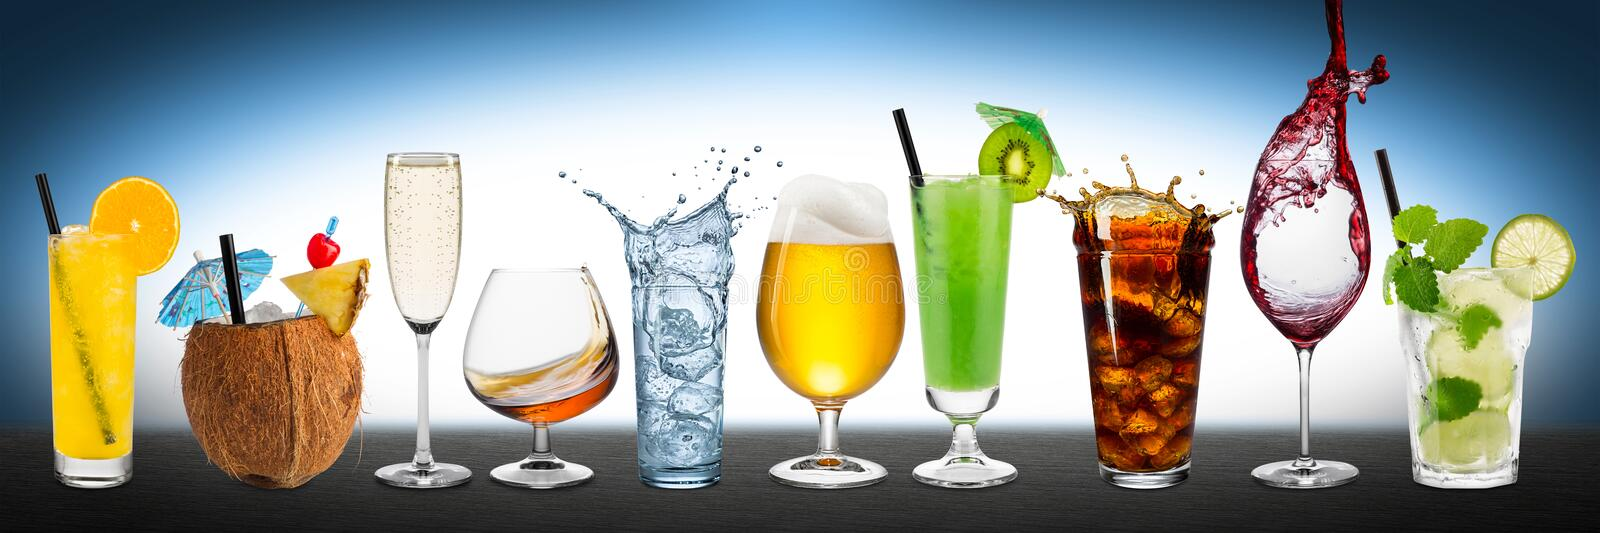 Row of various beverages stock photos